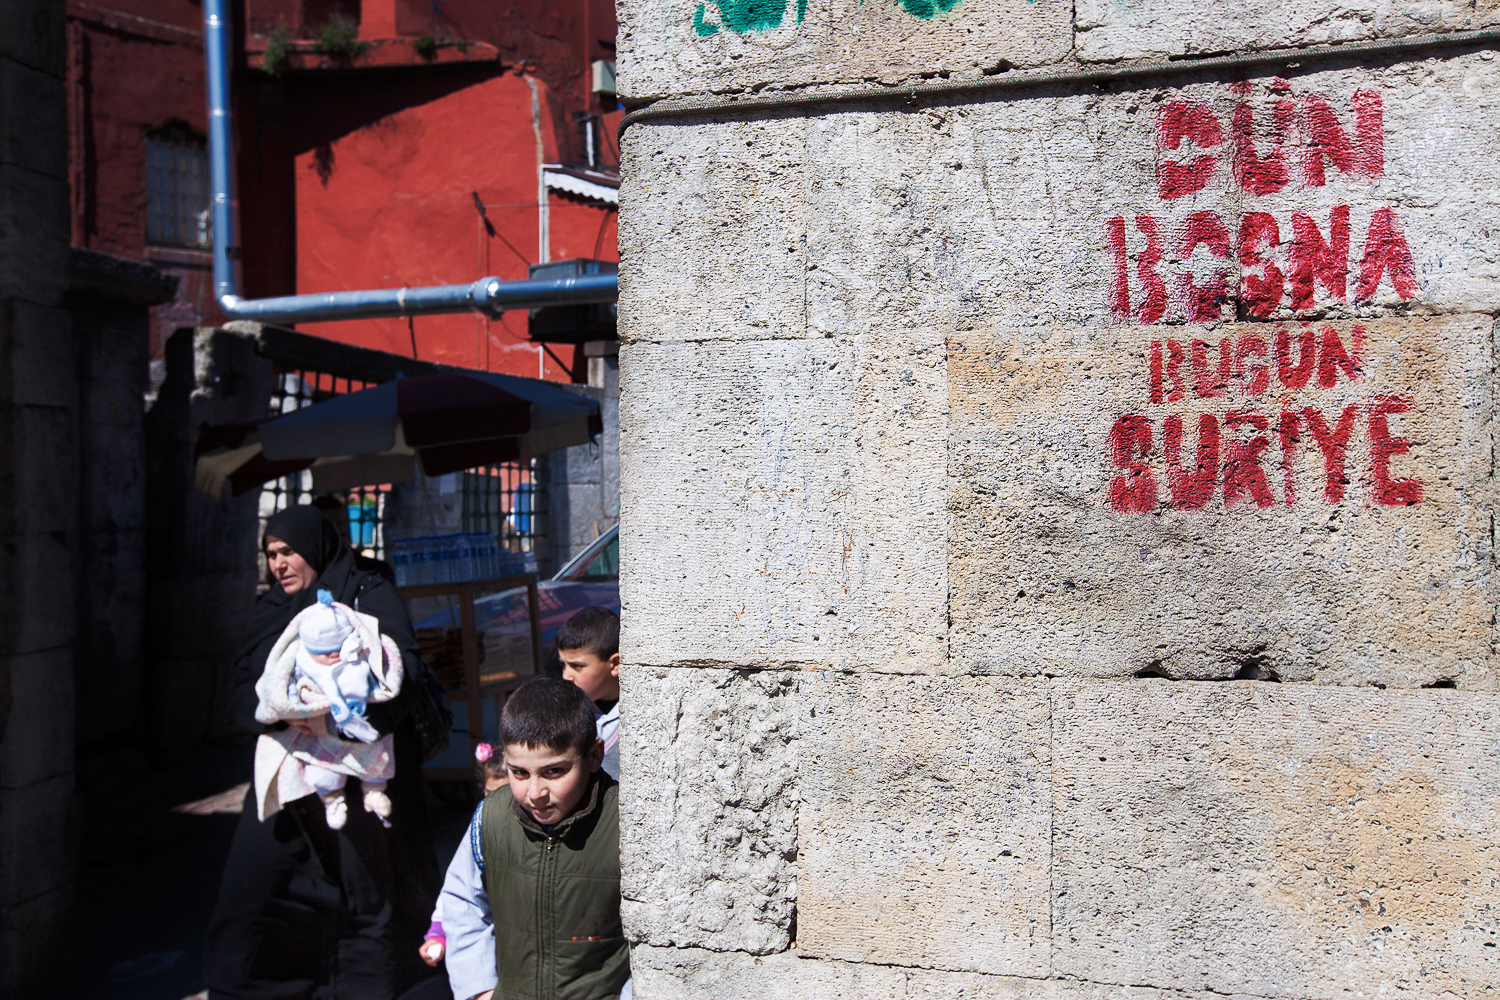 The wall near the Fatih mosque bears a slogan reading: 'Yesterday Bosnia, today Syria'. The Syrian community in Turkey is now estimated at 1.5 million people. [Mauro Prandelli/Transterra Media]